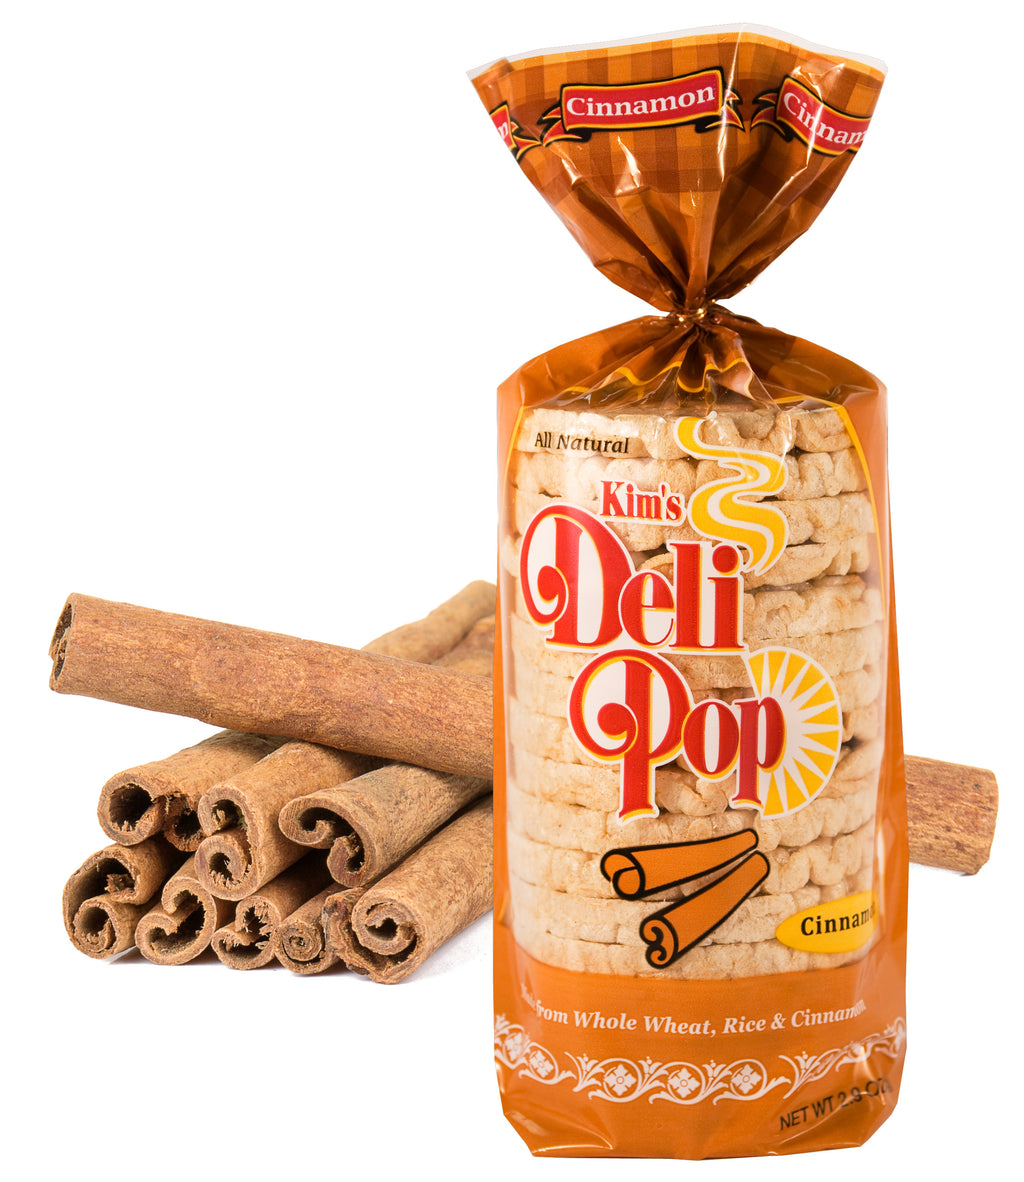 KIM'S MAGIC POP Deli Pop Cinnamon Flavor